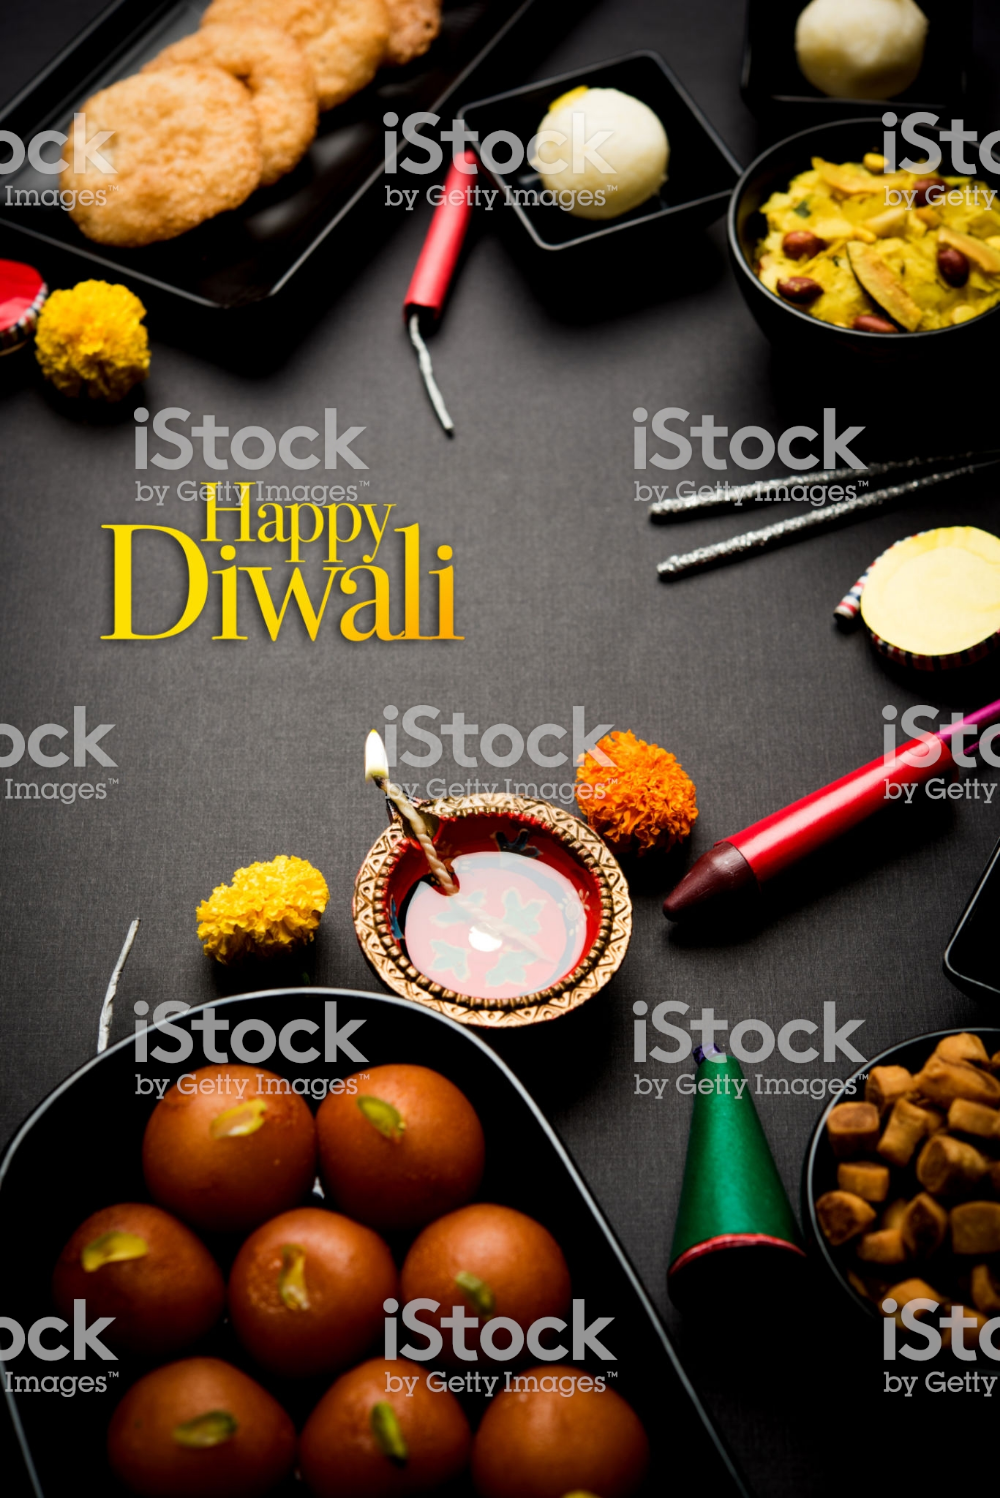 Happy Diwali Greeting Card made using sweets, or fire crackers or...